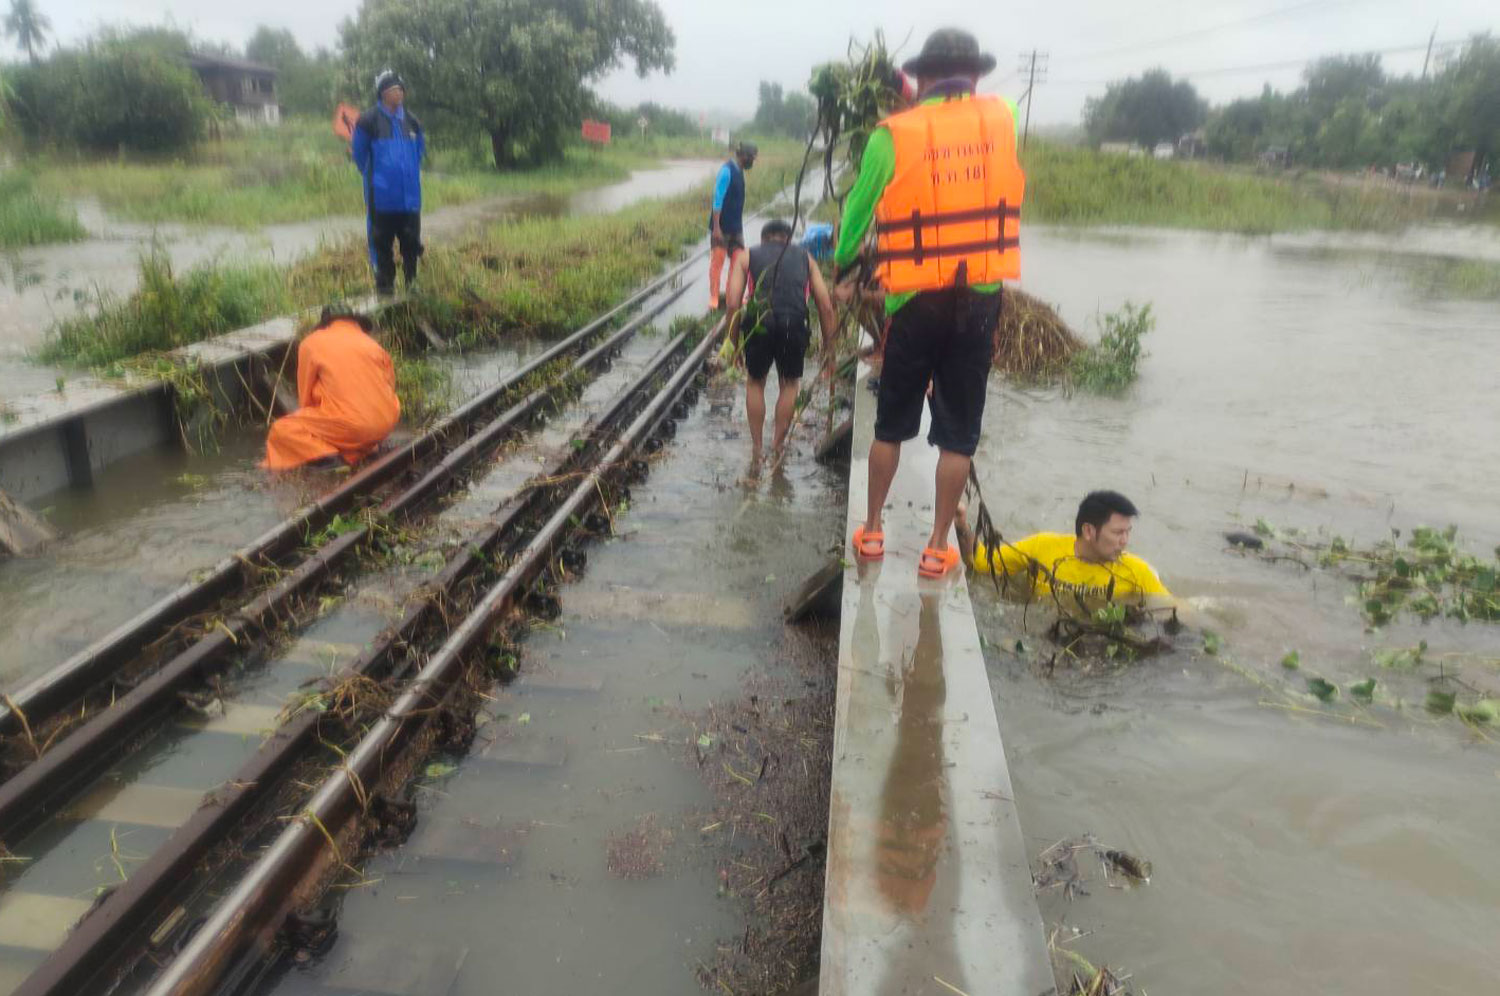 Northeast train services halted, track flooded